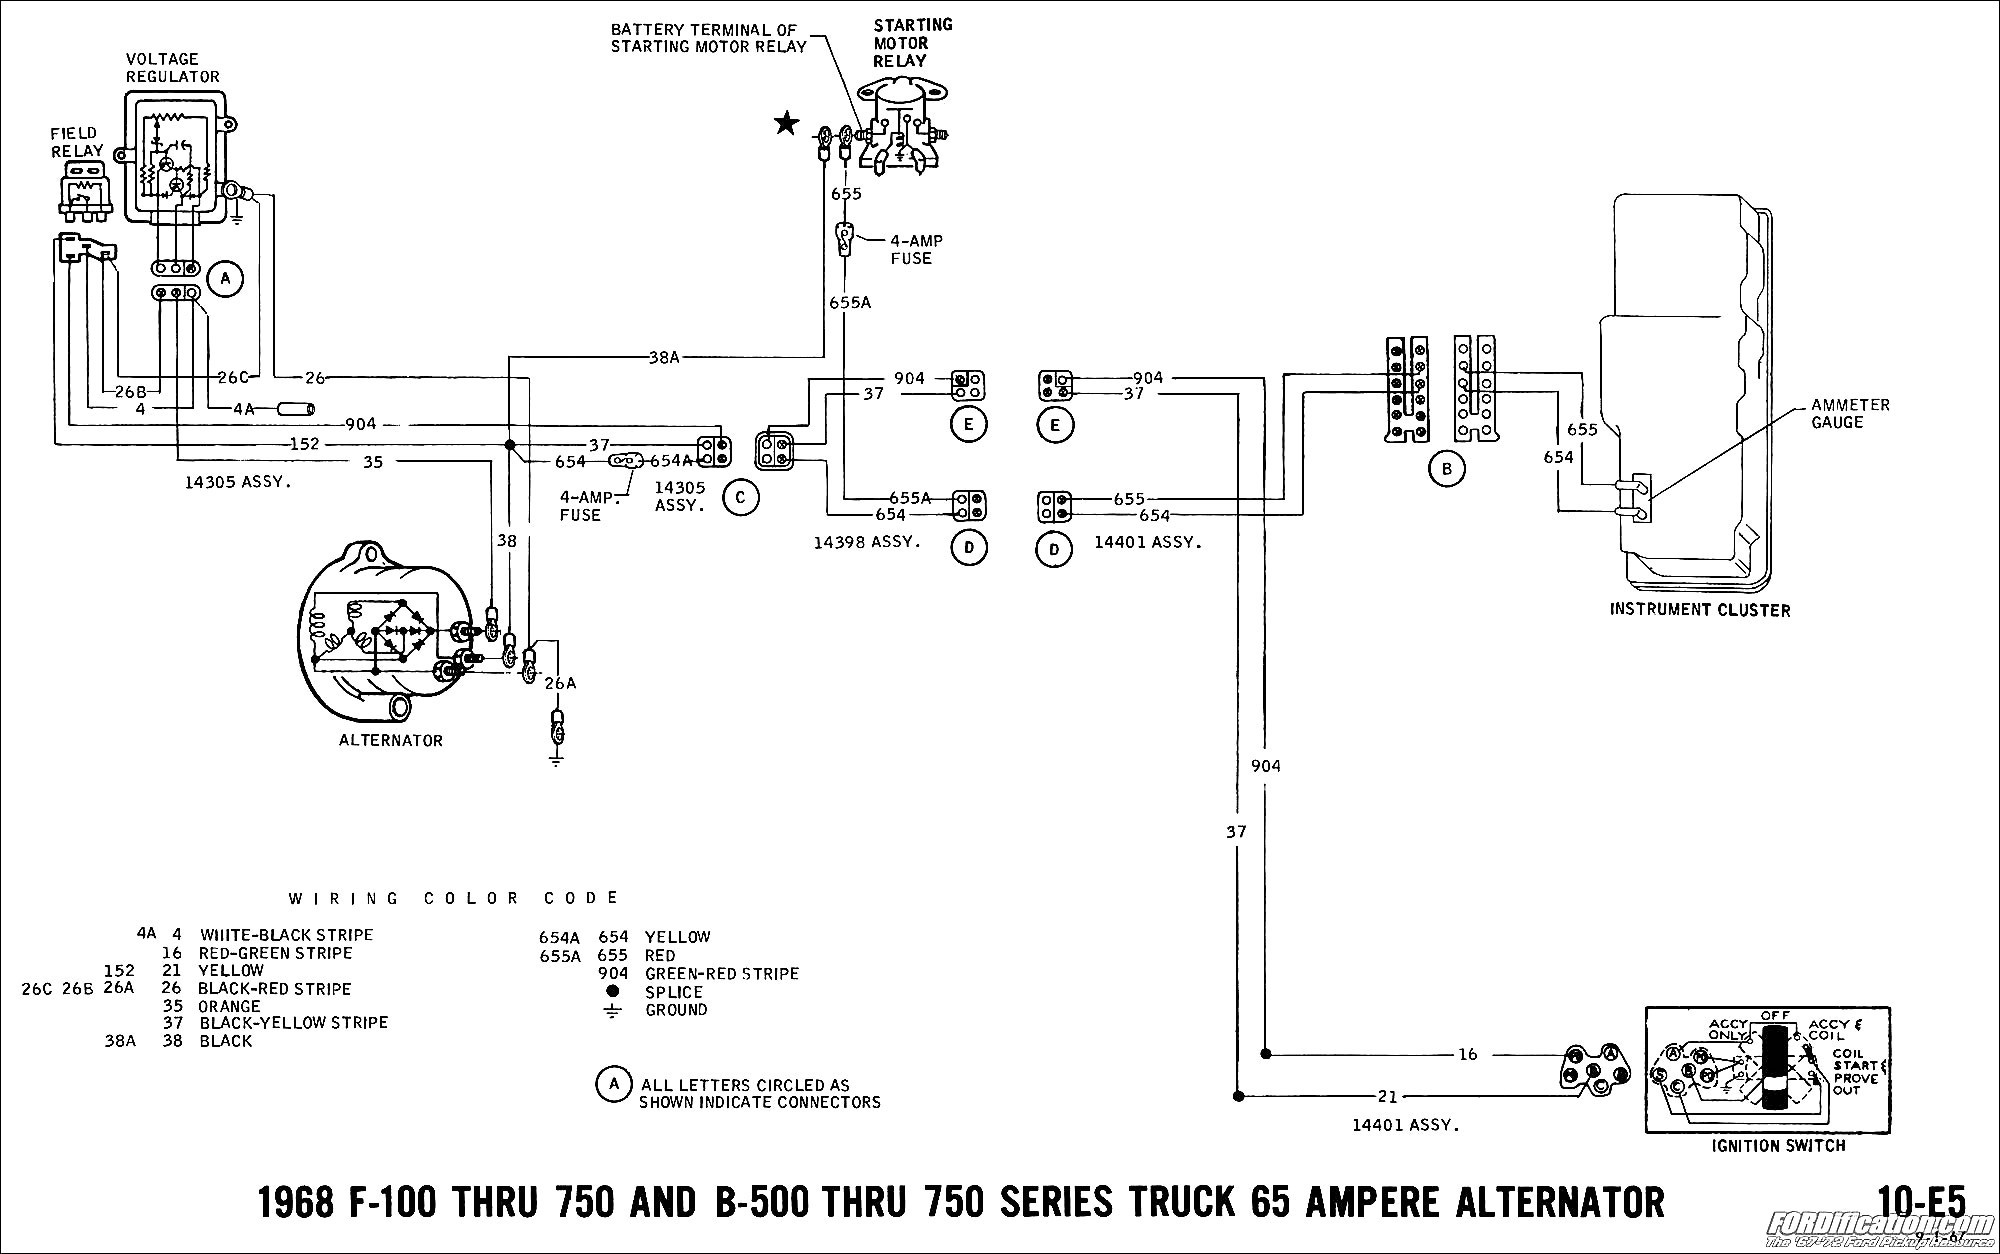 4500 Ford Backhoe Wiring Diagram Library Allison Shifter Tractor 6610 Alternator Starting Know About 7740